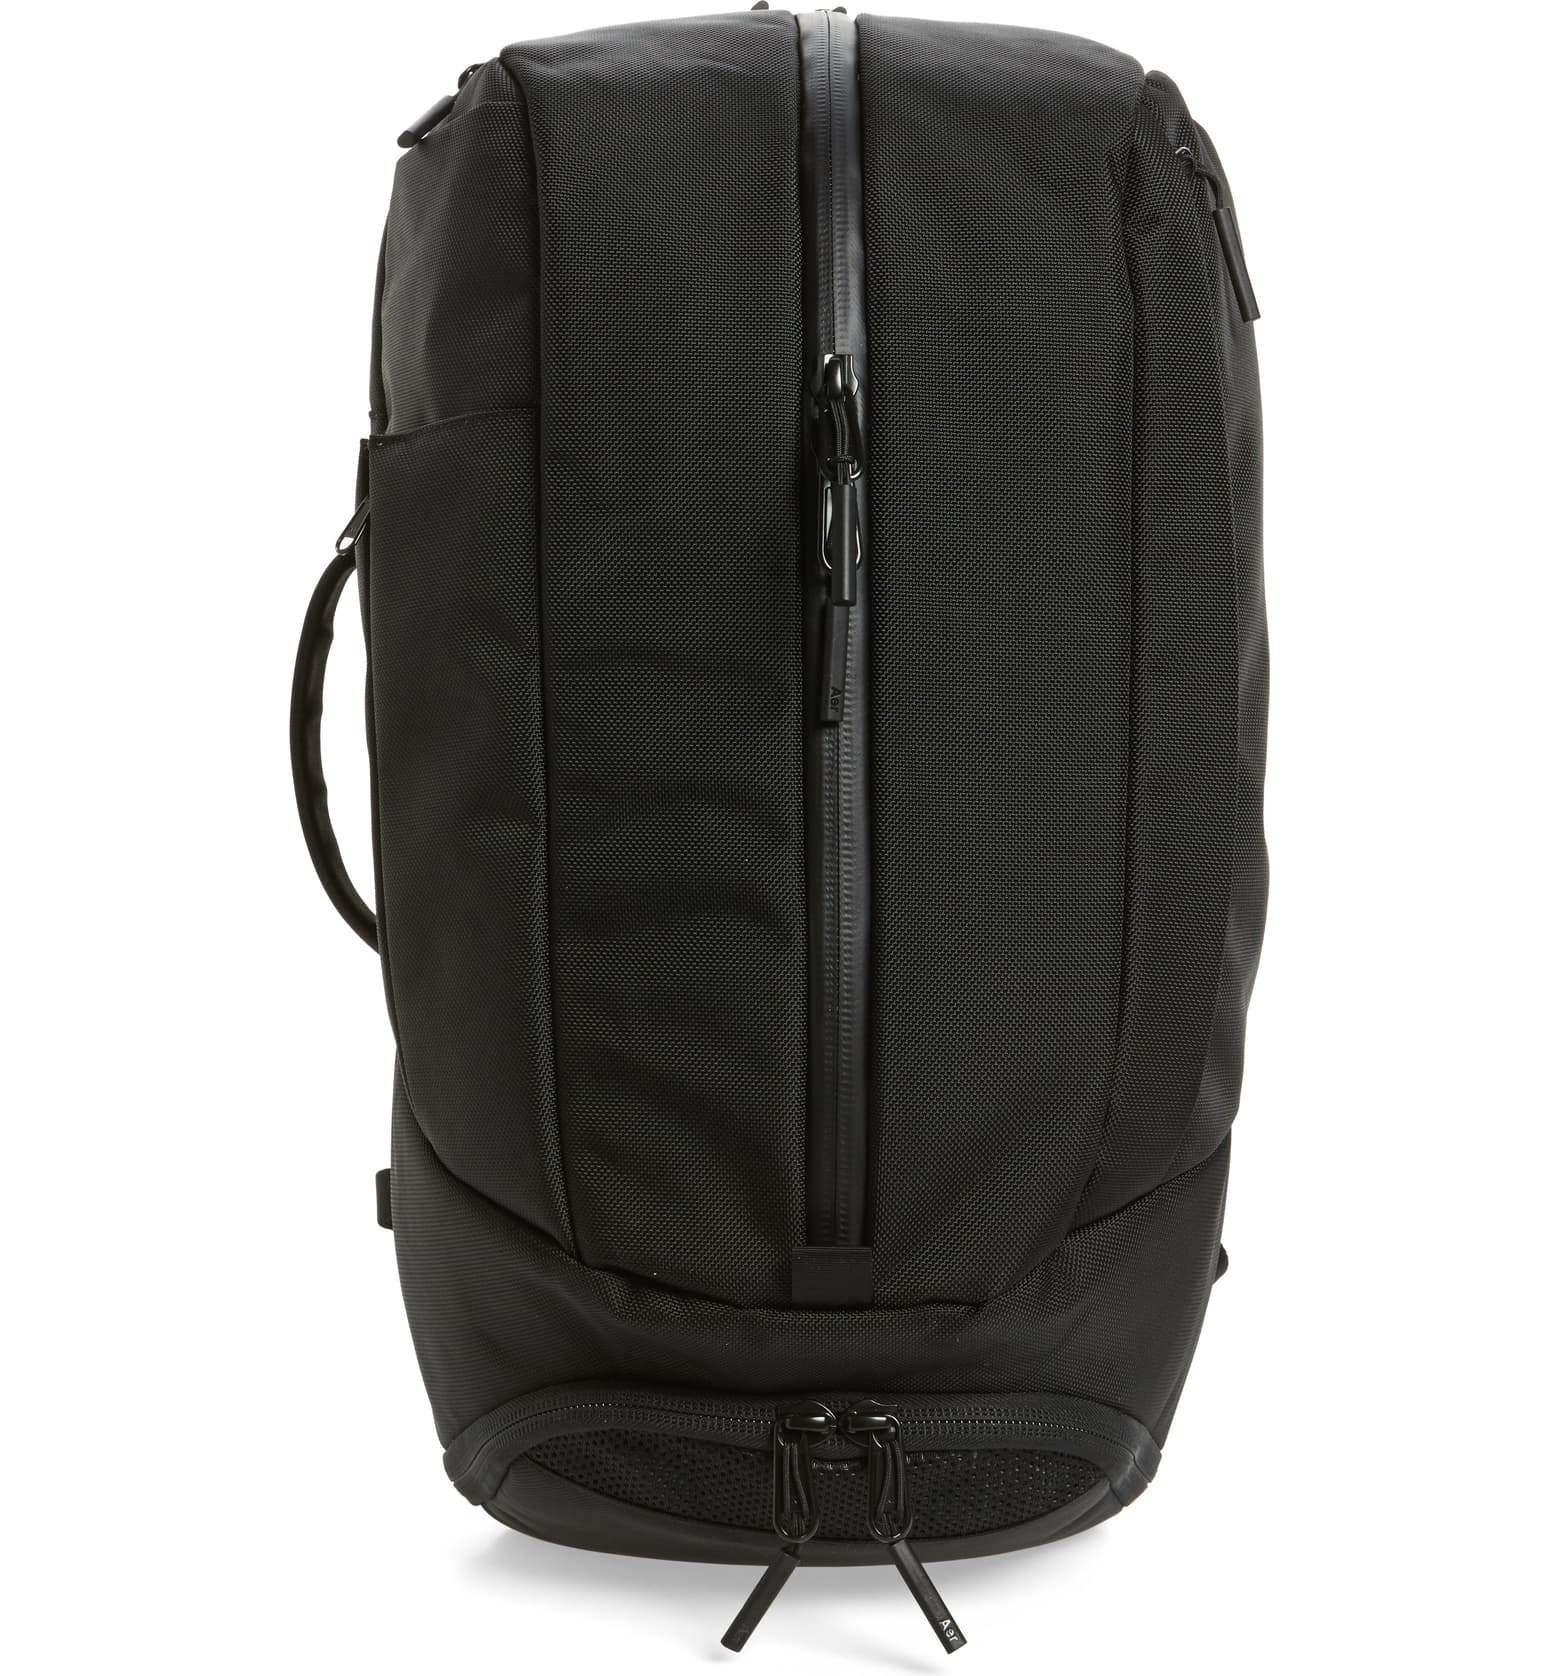 duffel backpack gym bag